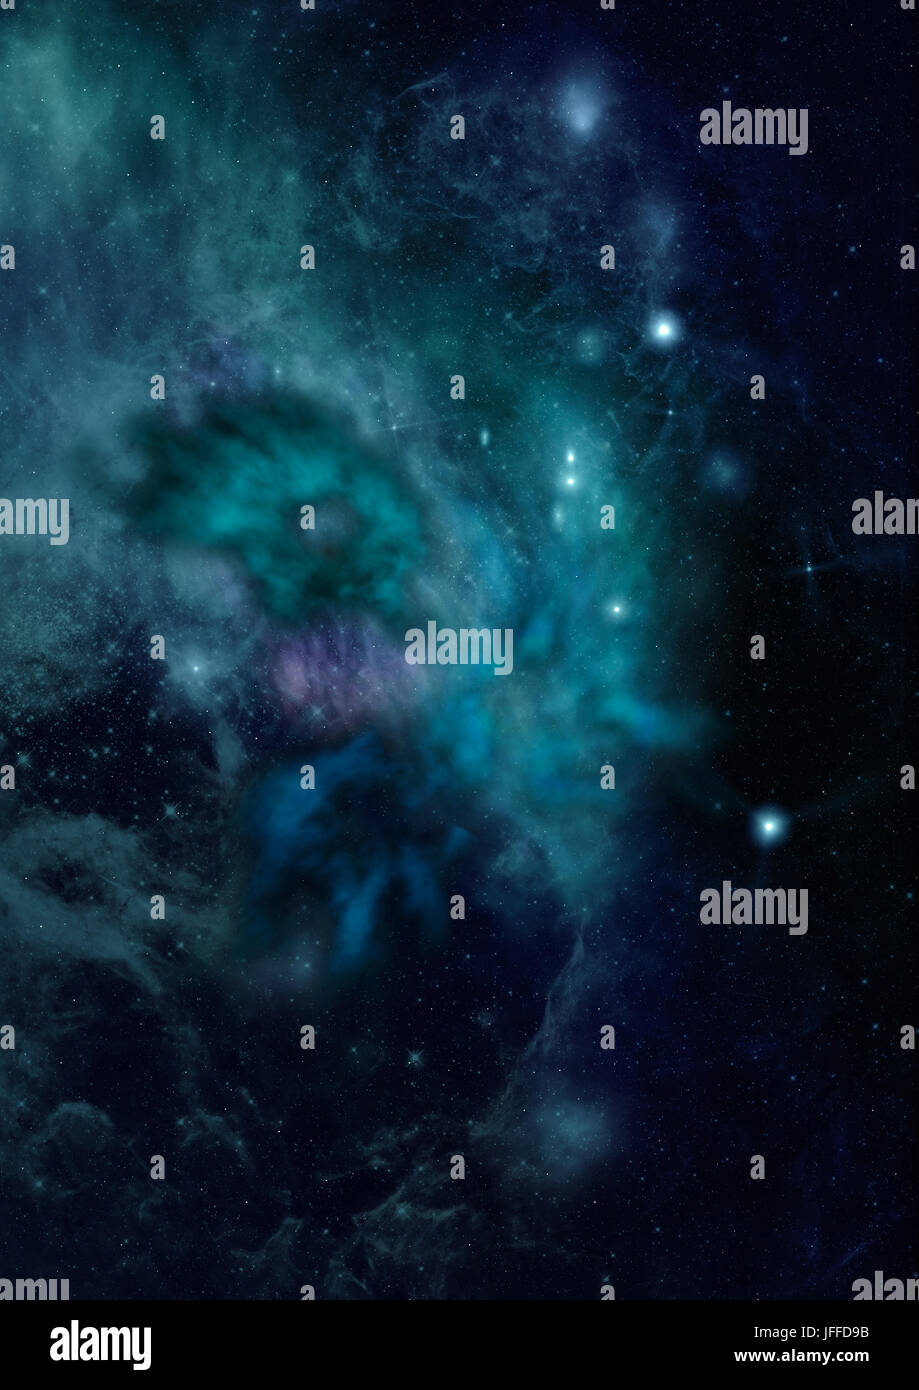 Small part of an infinite star field - Stock Image